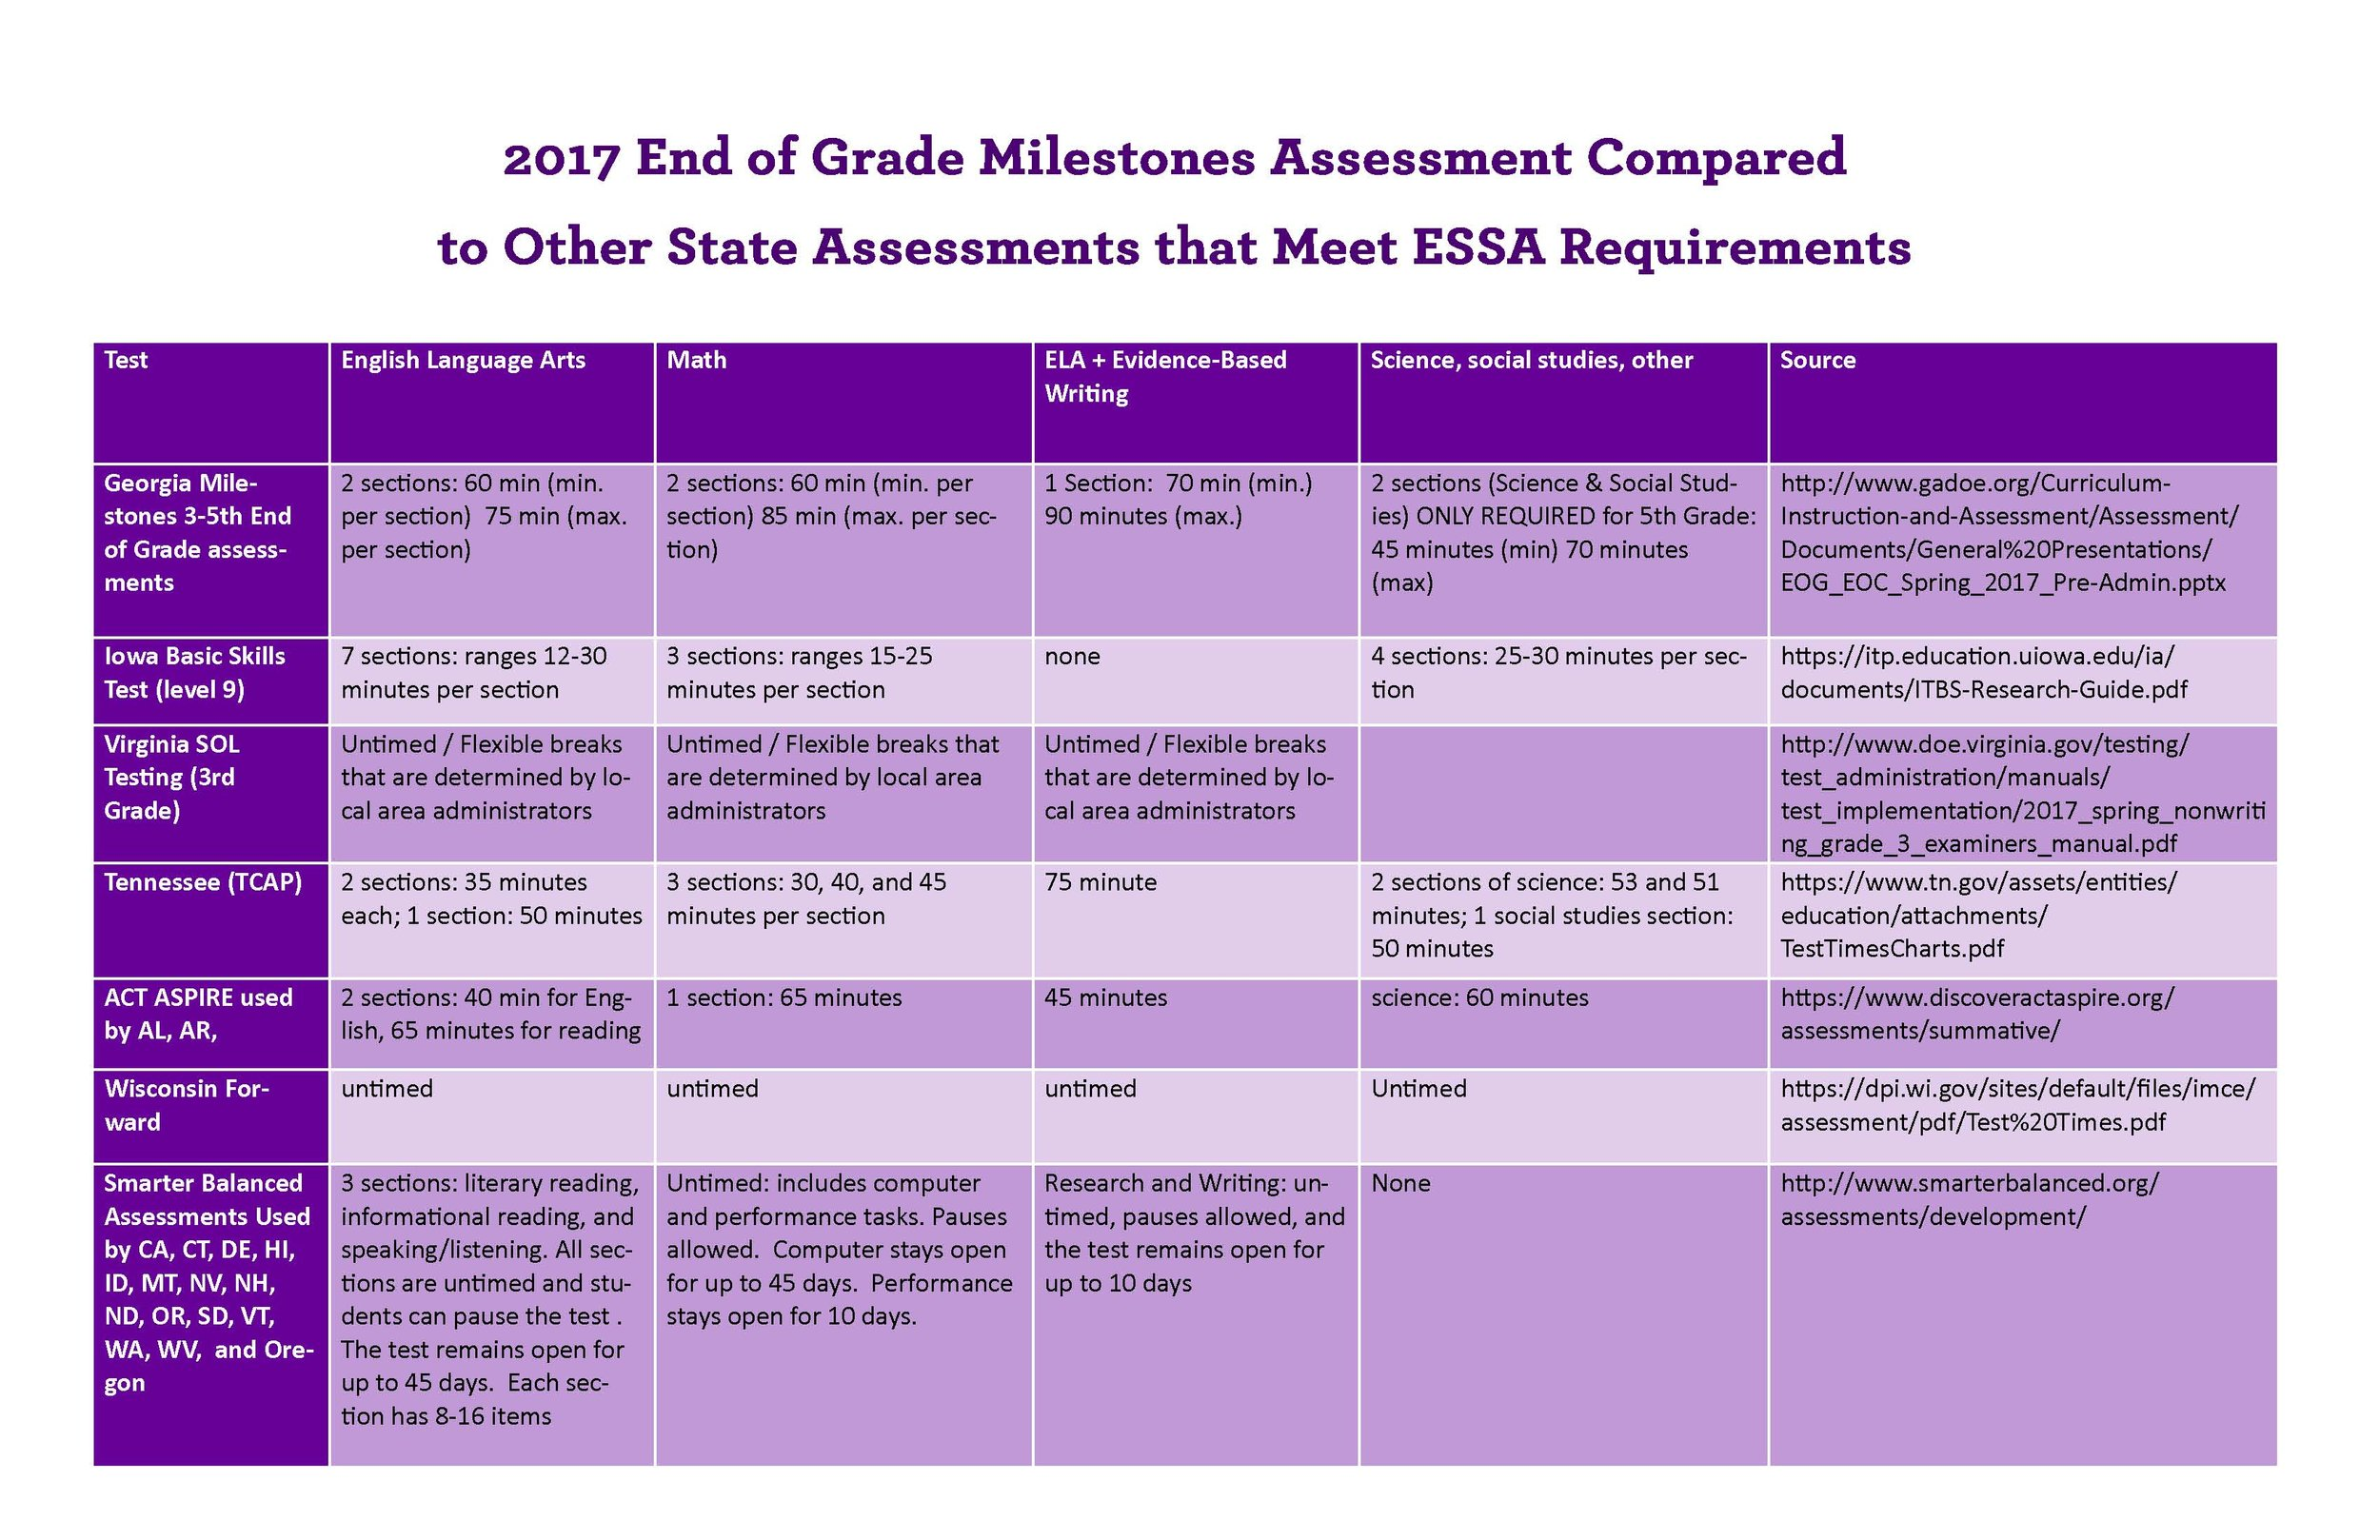 Eligibility Ga Milestone Testing Session Timespared To Those In Other  States That Meet Essa Standards